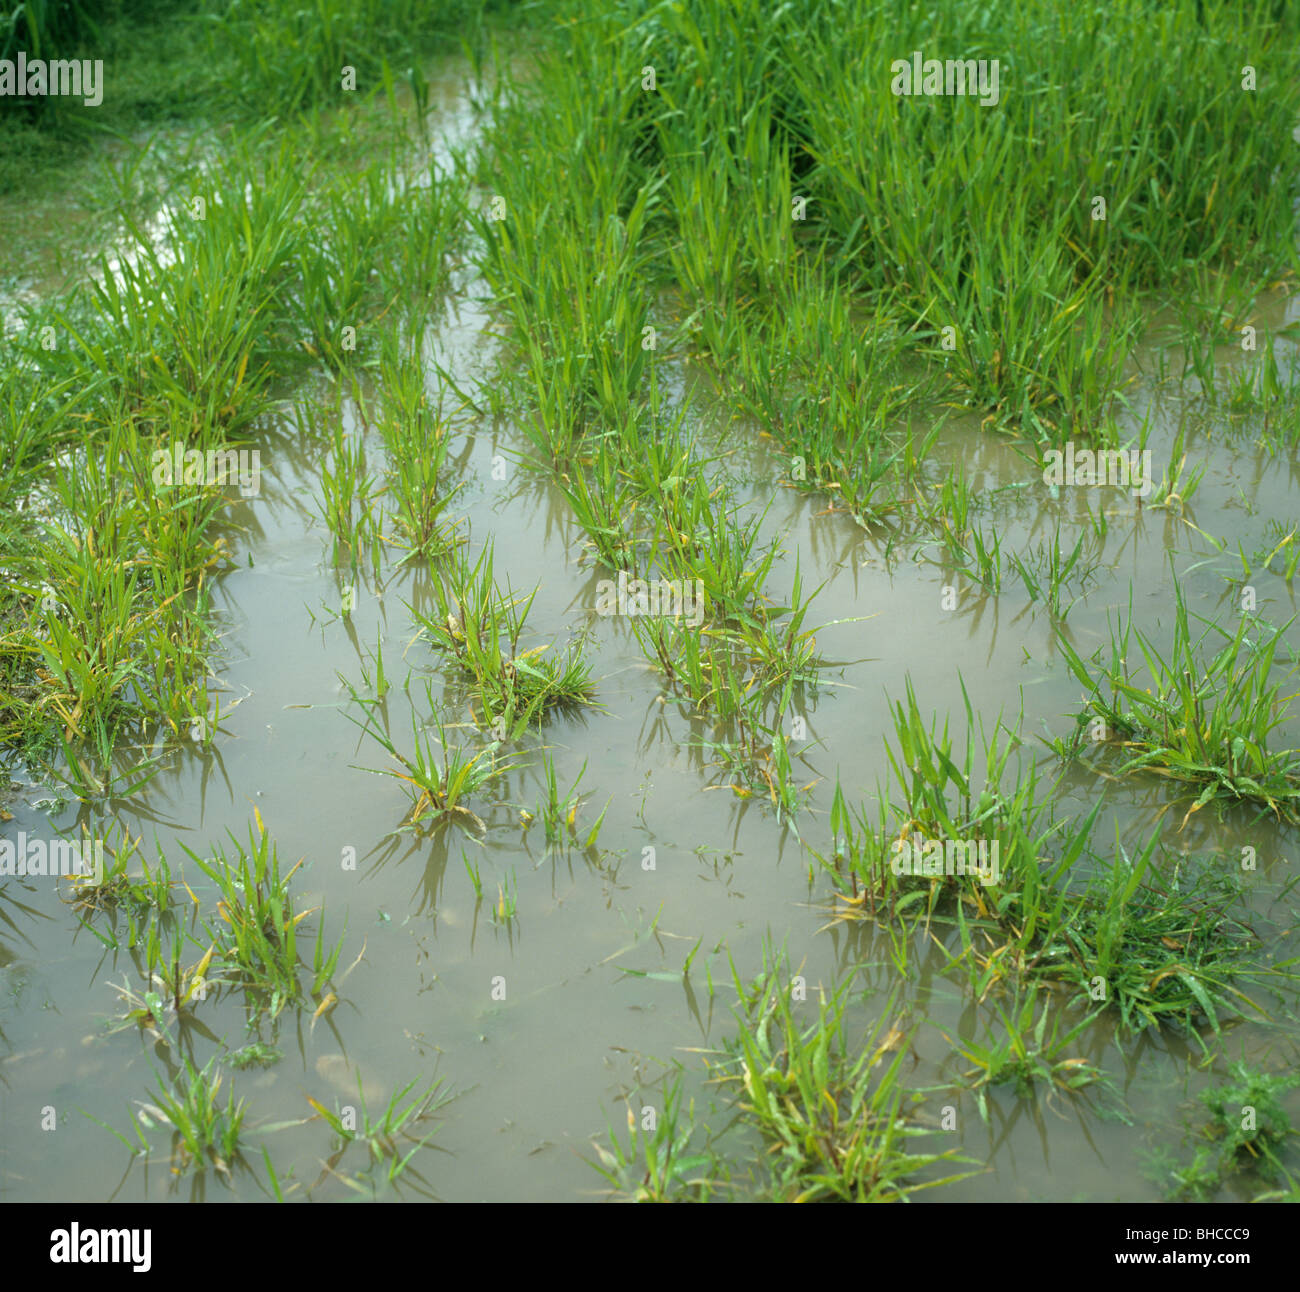 Young barley crop waterlogged after heavy rains - Stock Image